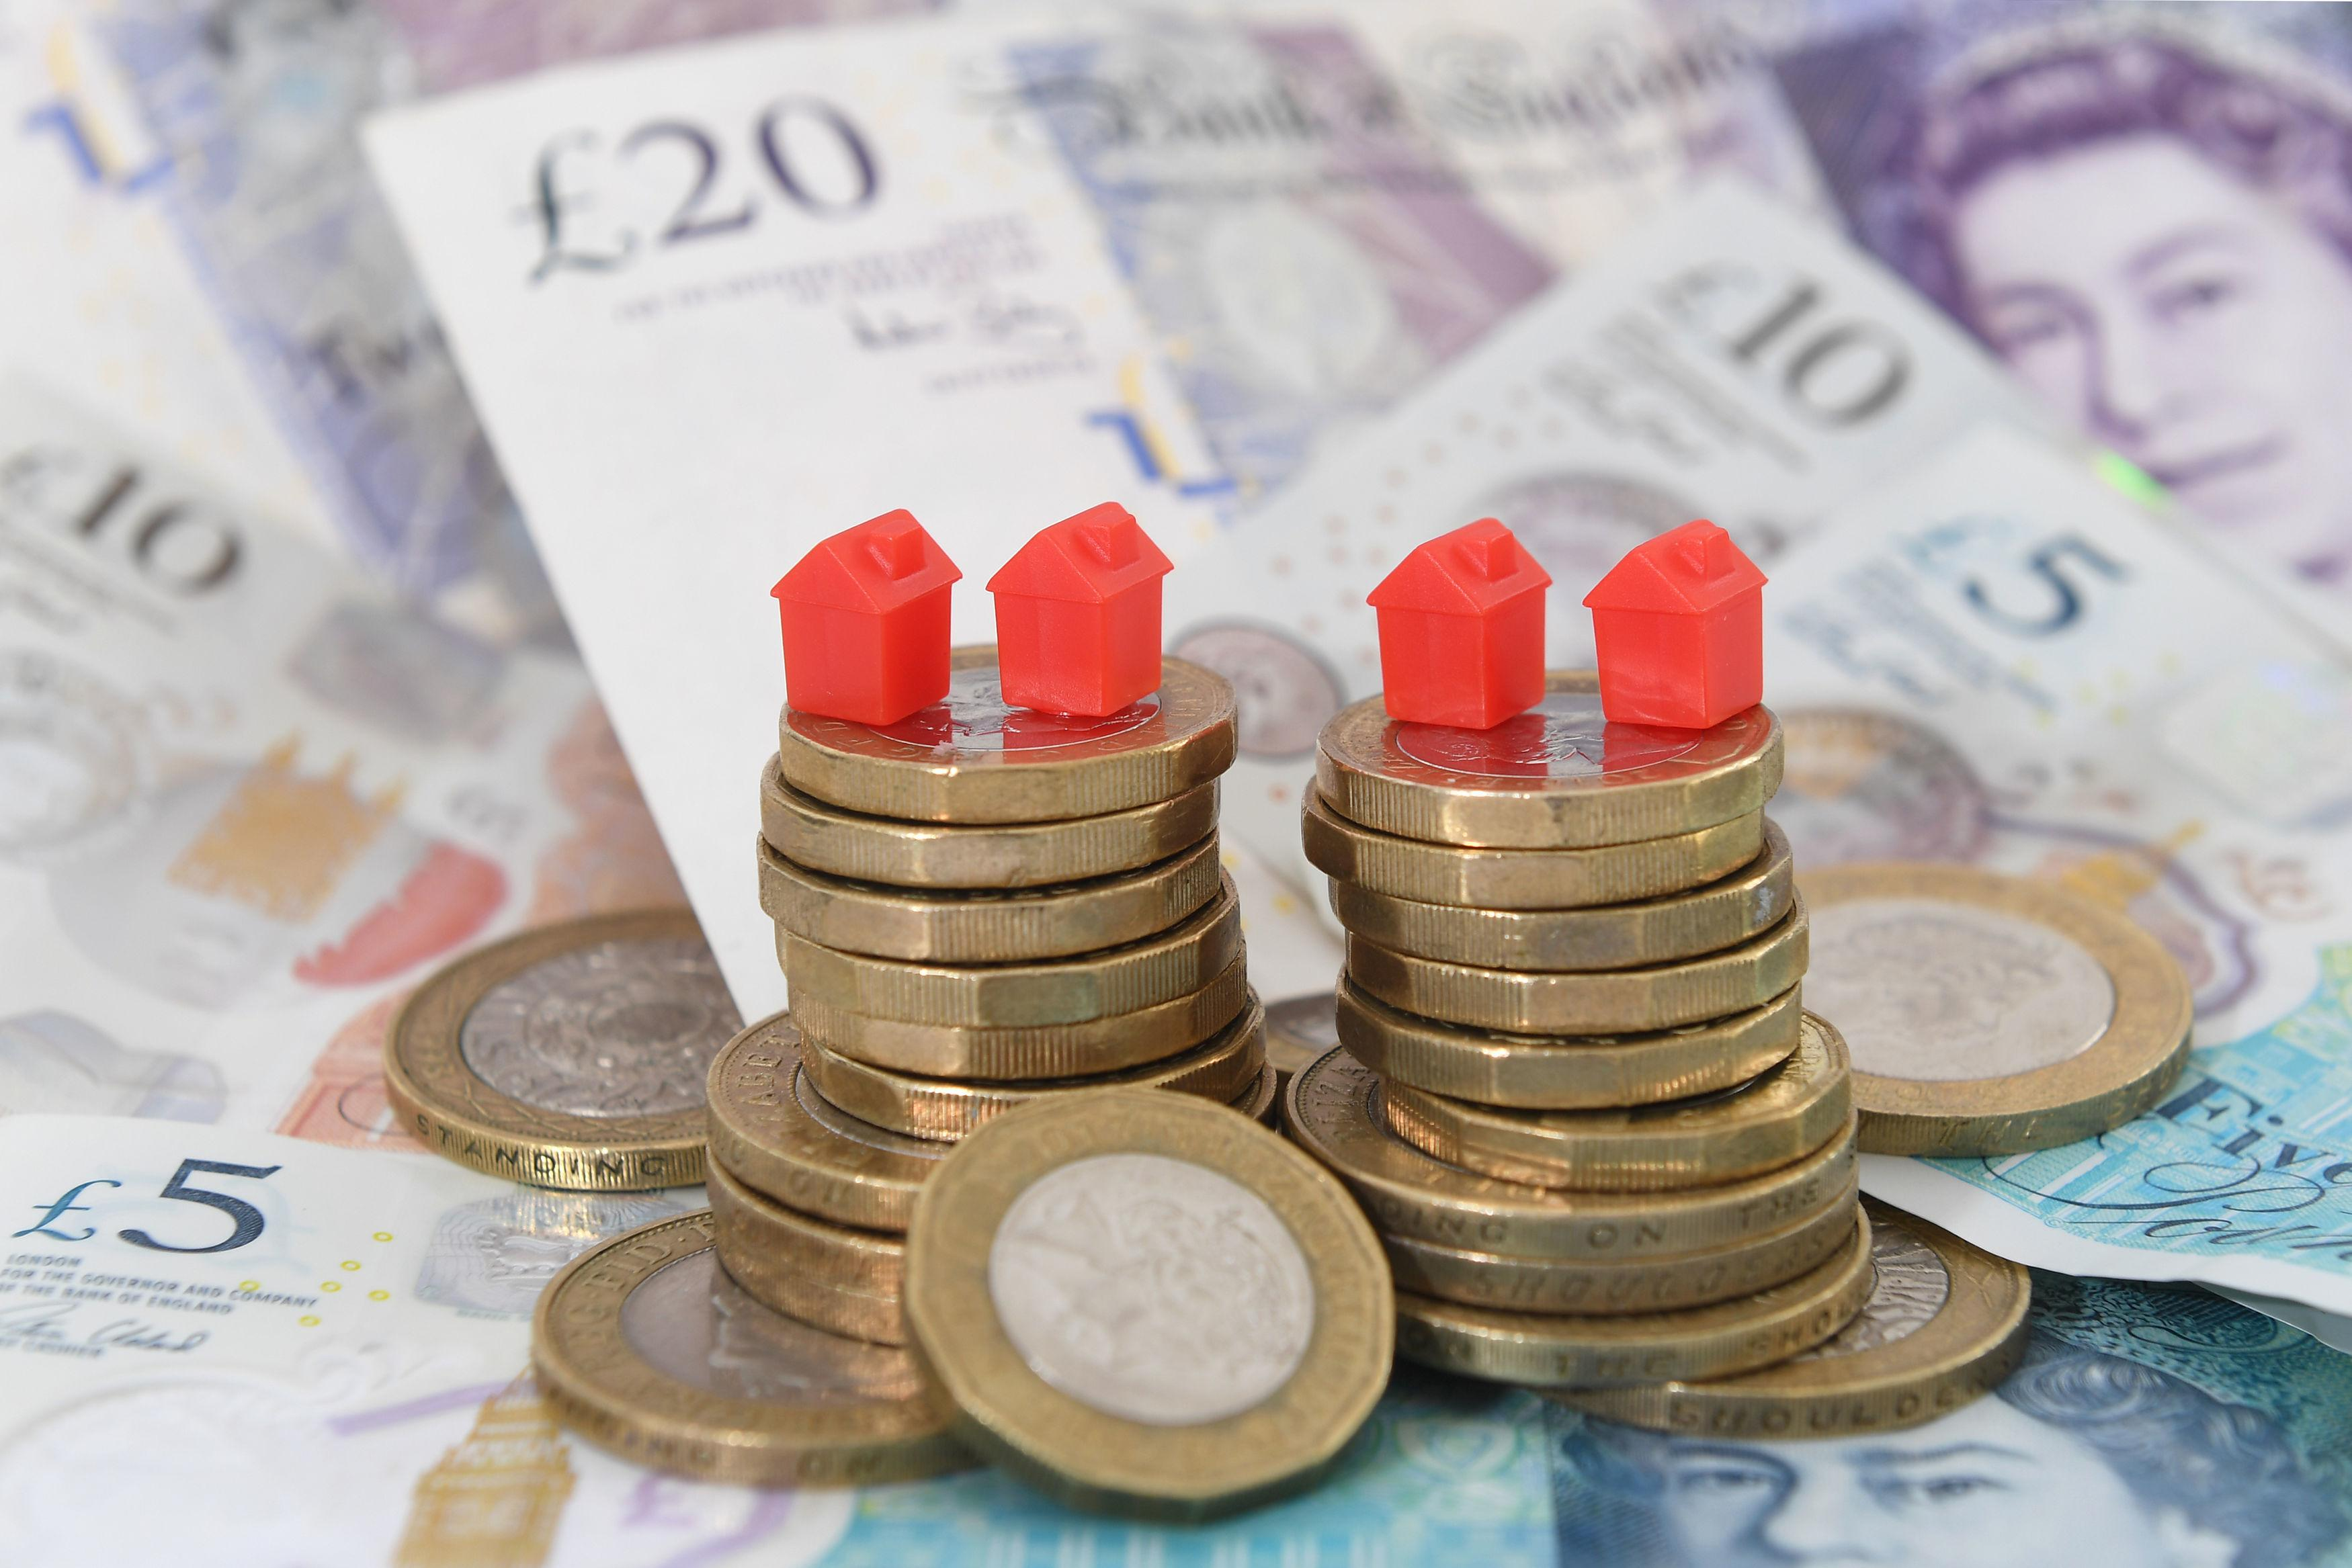 Brexit chills send UK house price growth to six-year low